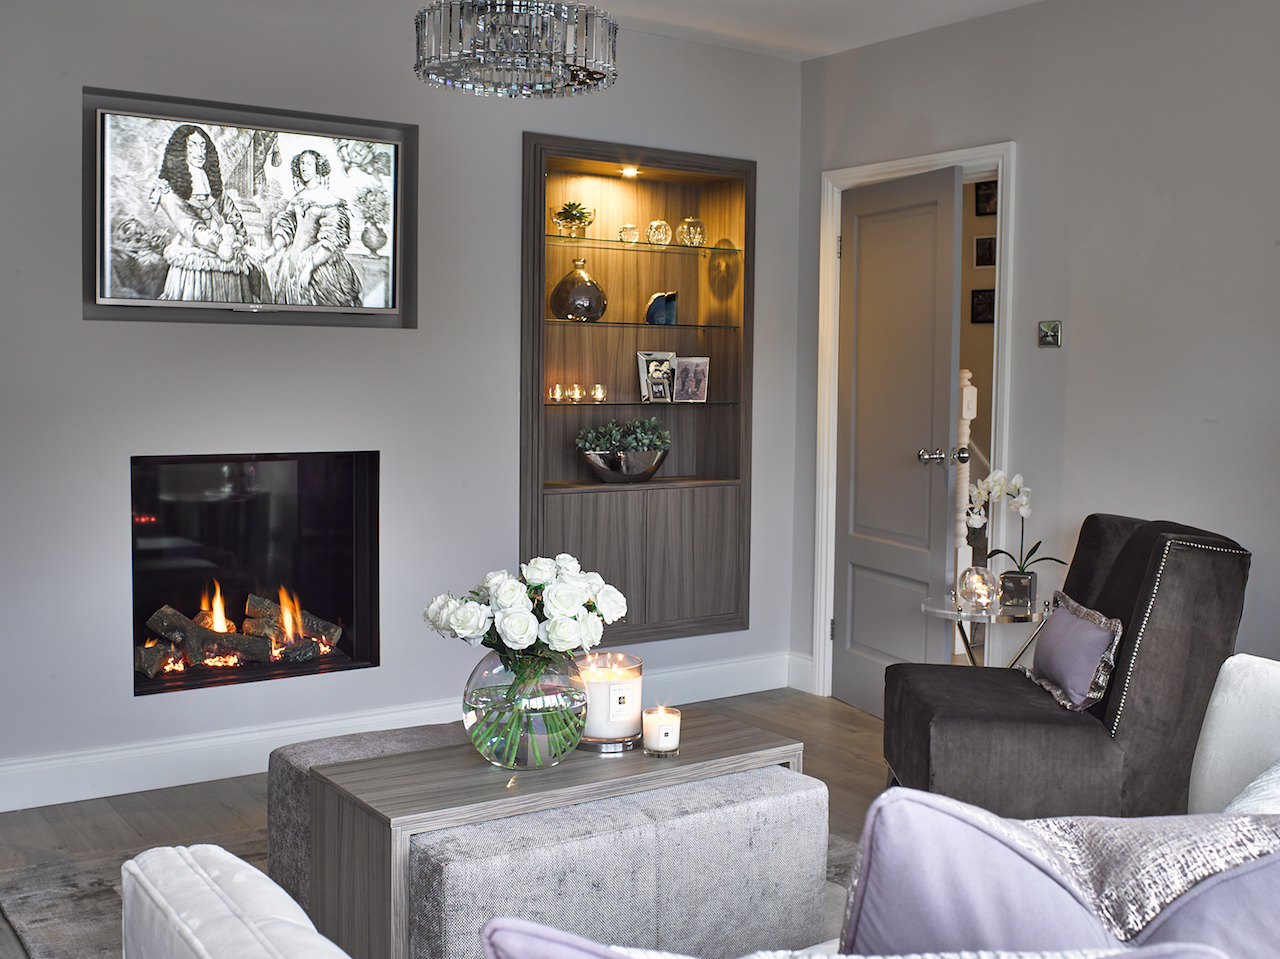 Stretton, Living Room, Made to Order, Elstead Lighting, Interior Design, Cheshire